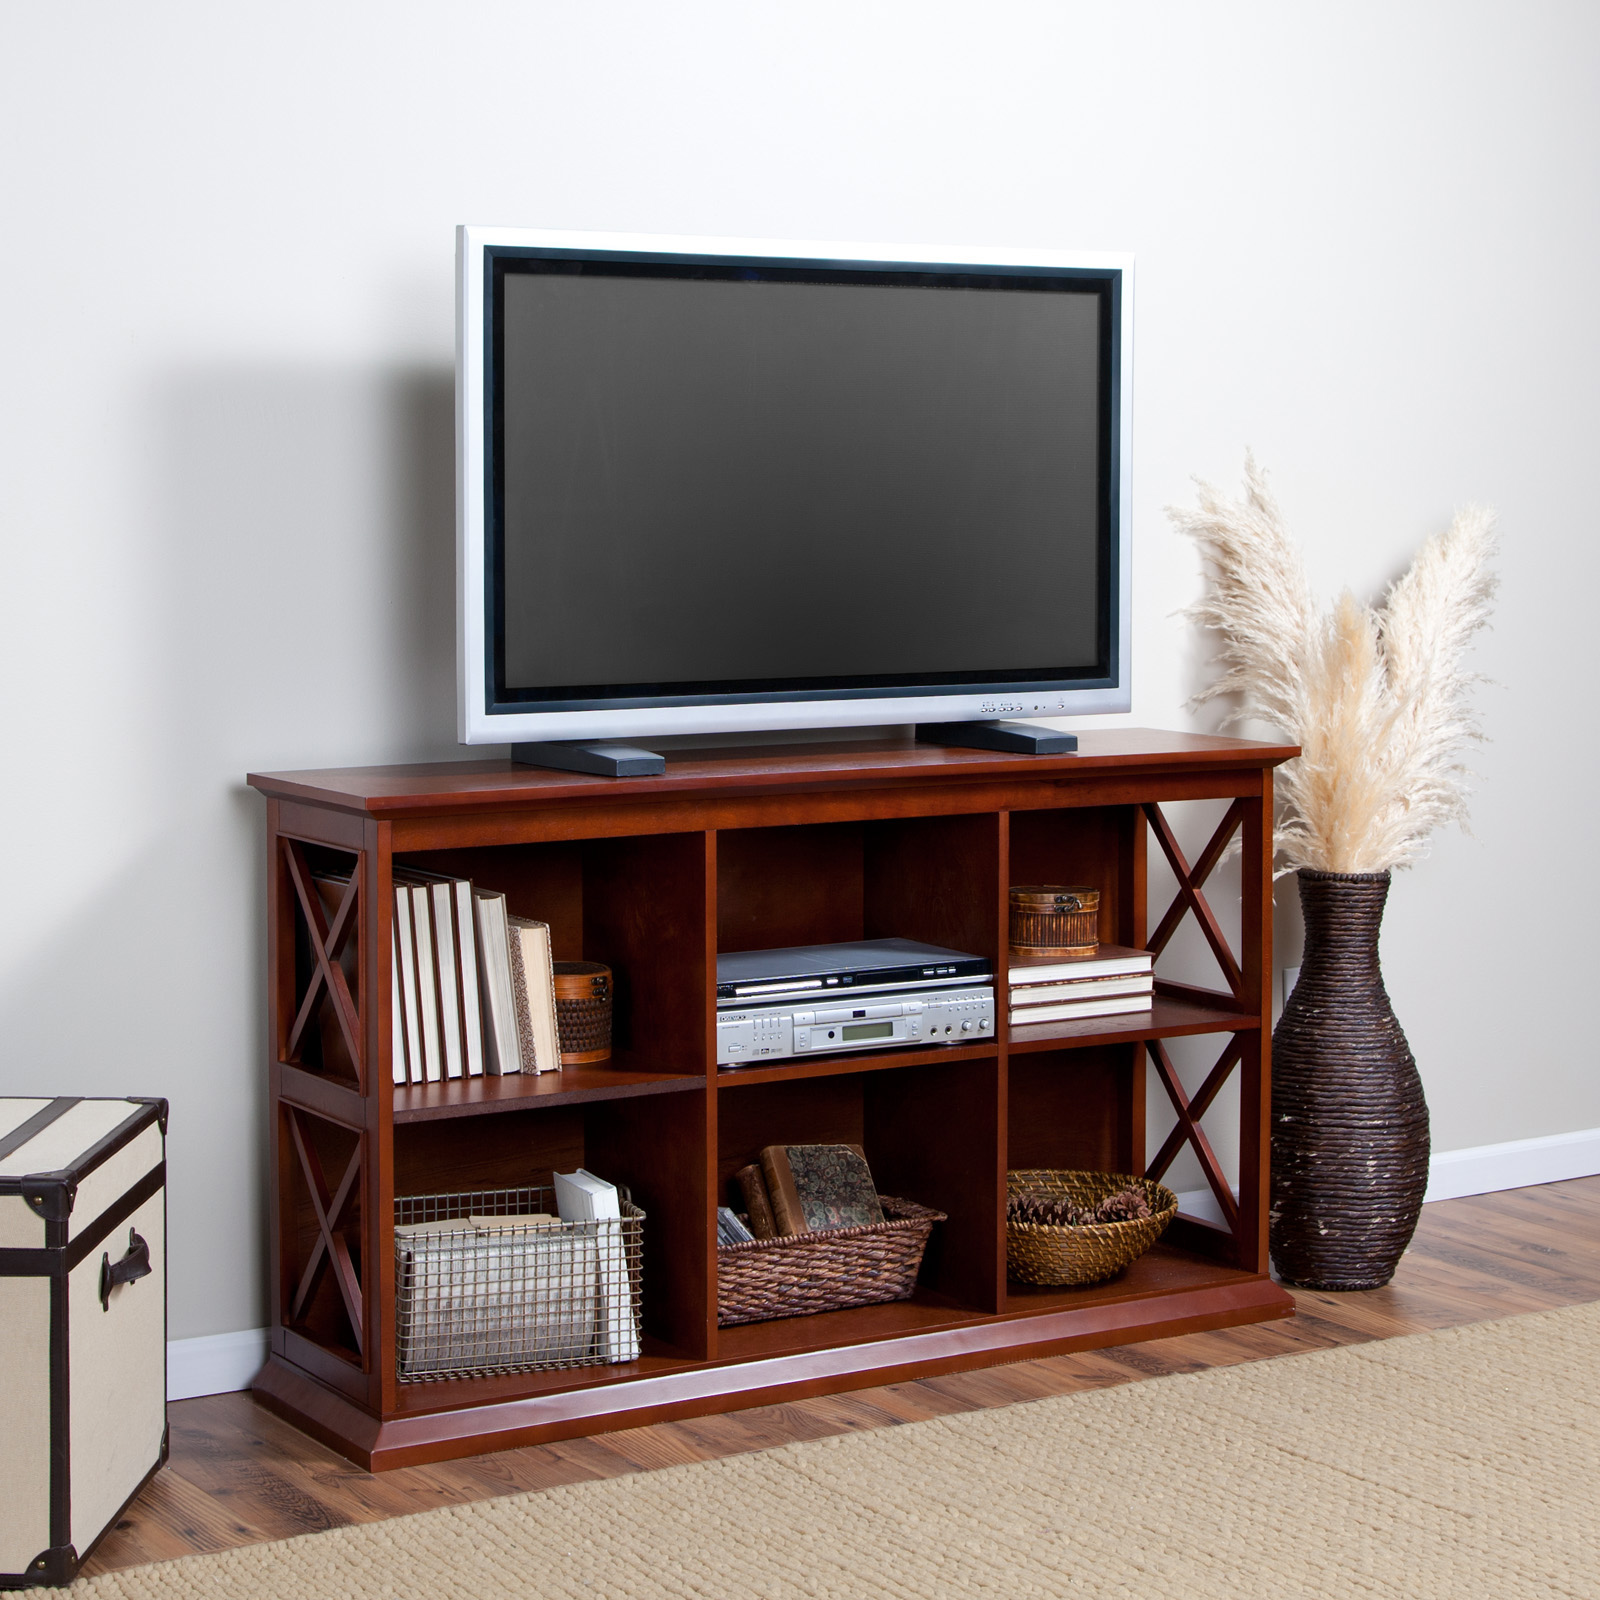 inch space signature design designed tv with entertain becker and bookcases pin furniture stand by to com great ashley delsolfurniture carlyle door world bookcase at large storage